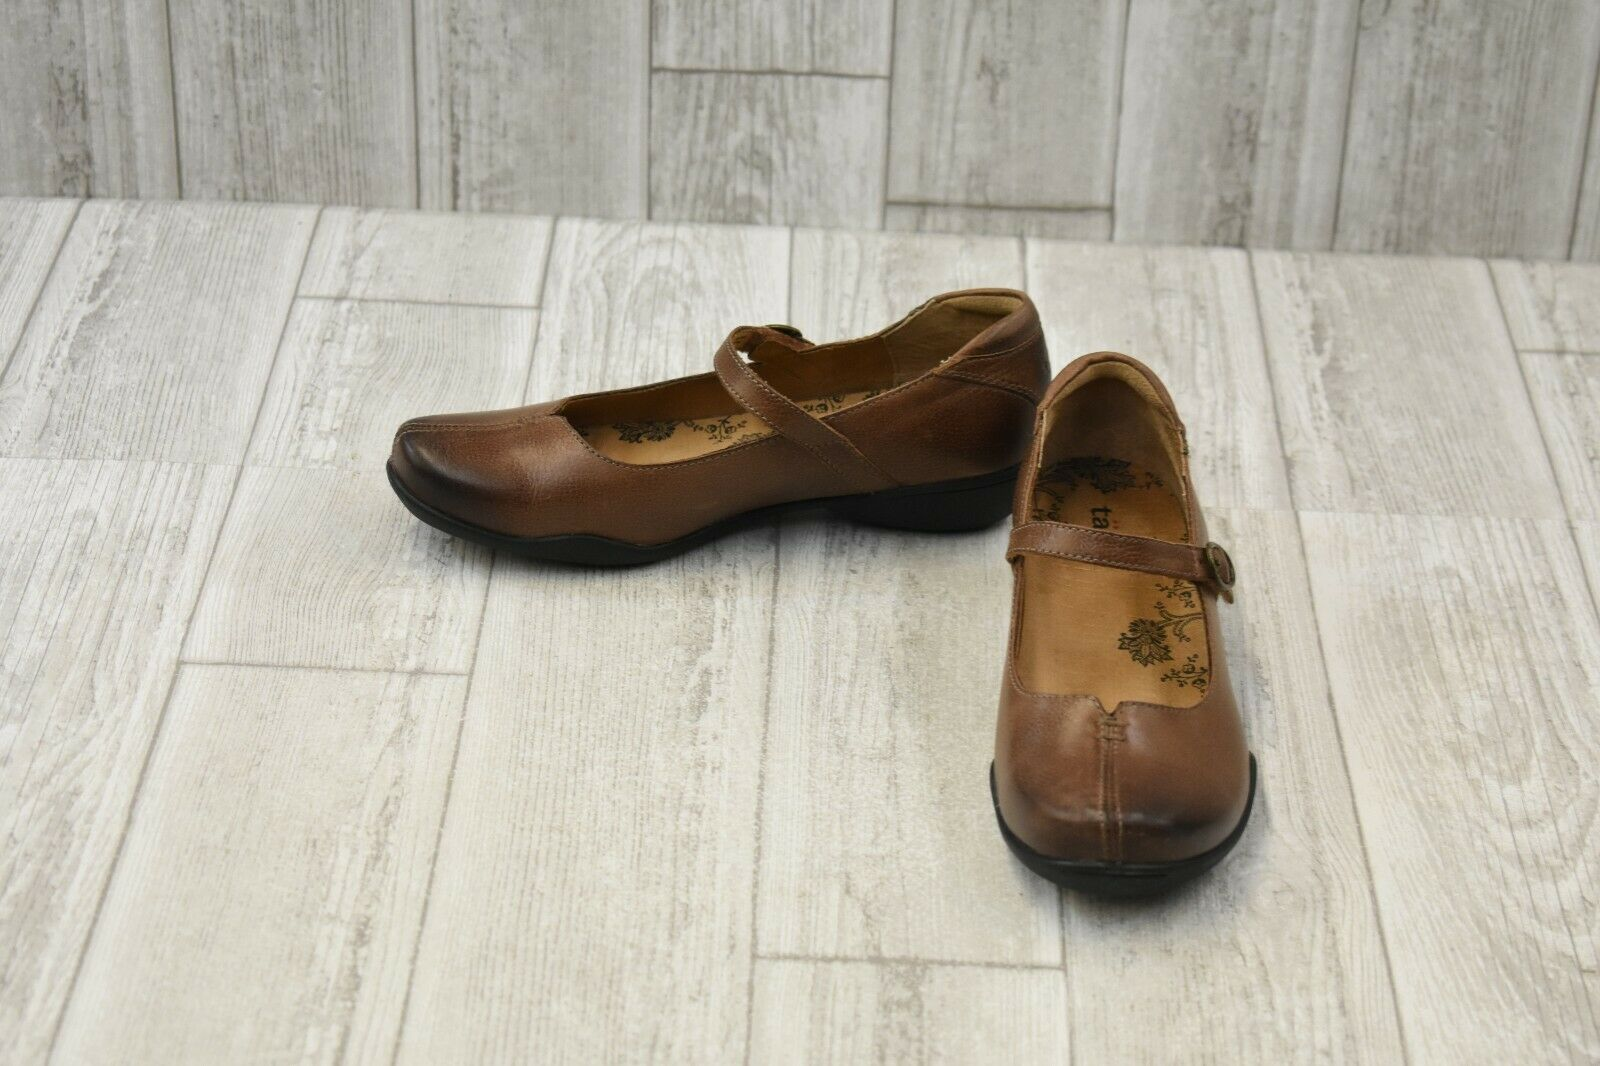 Taos Footwear Ta Dah Distressed Leather Mary Janes, Women's Size 7M, Whiskey